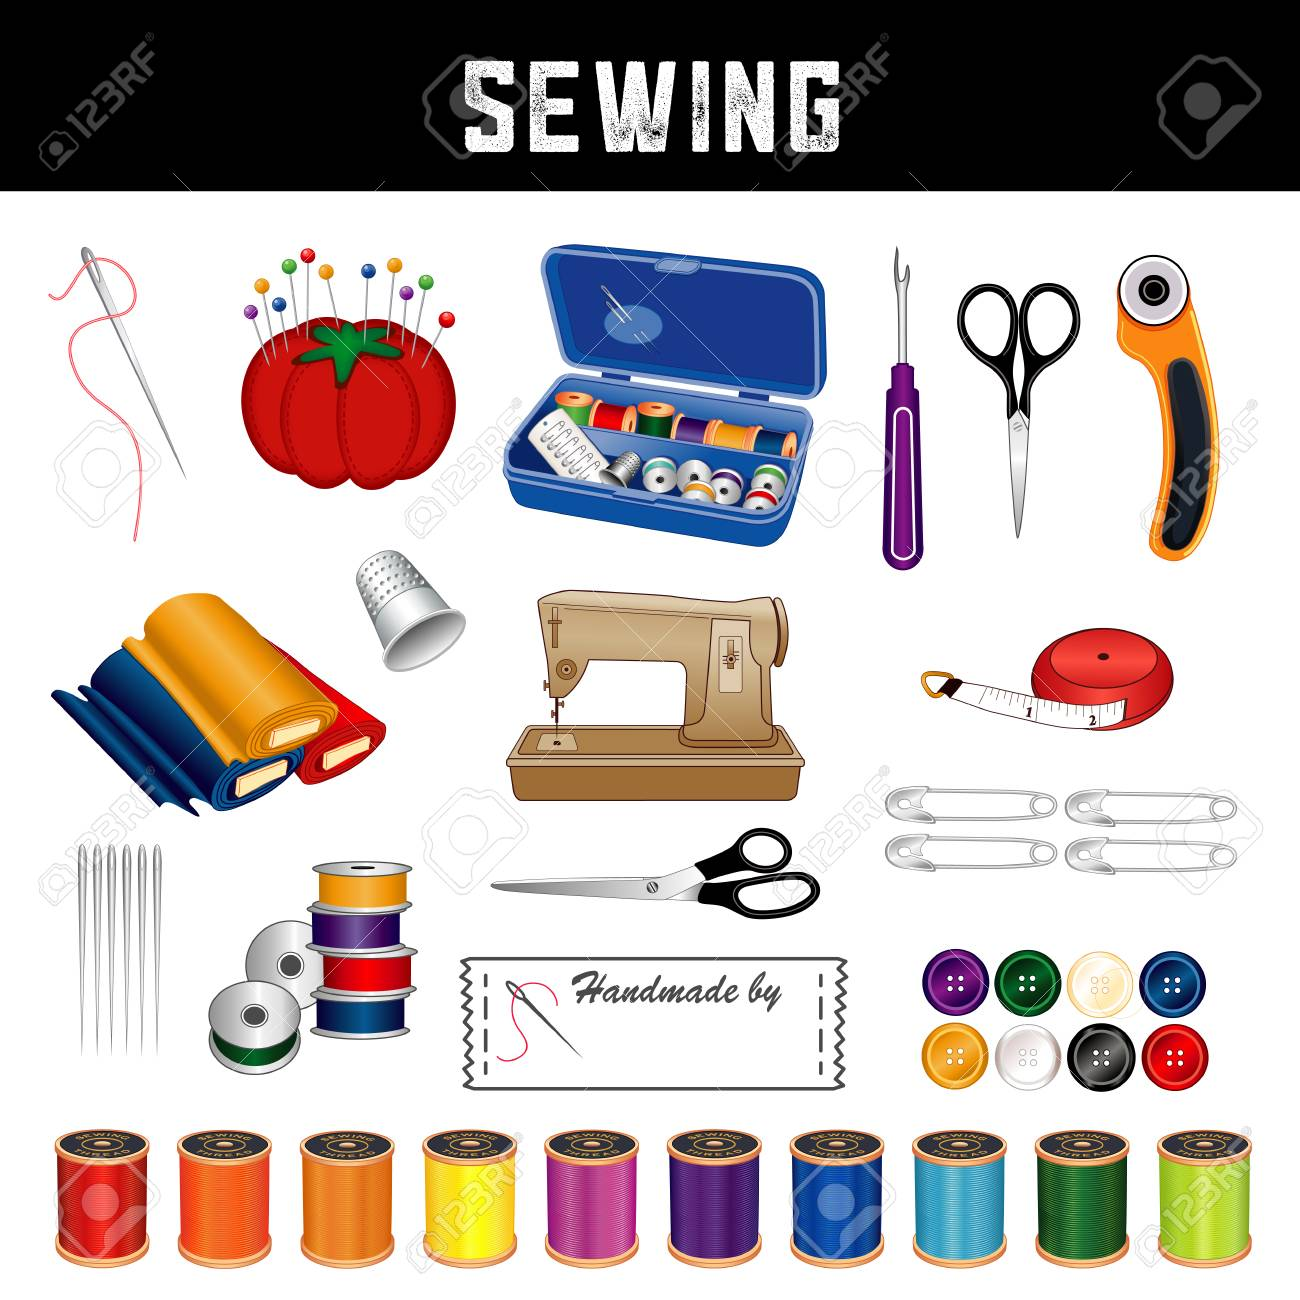 Sewing and tailoring supplies and tools - 120220443